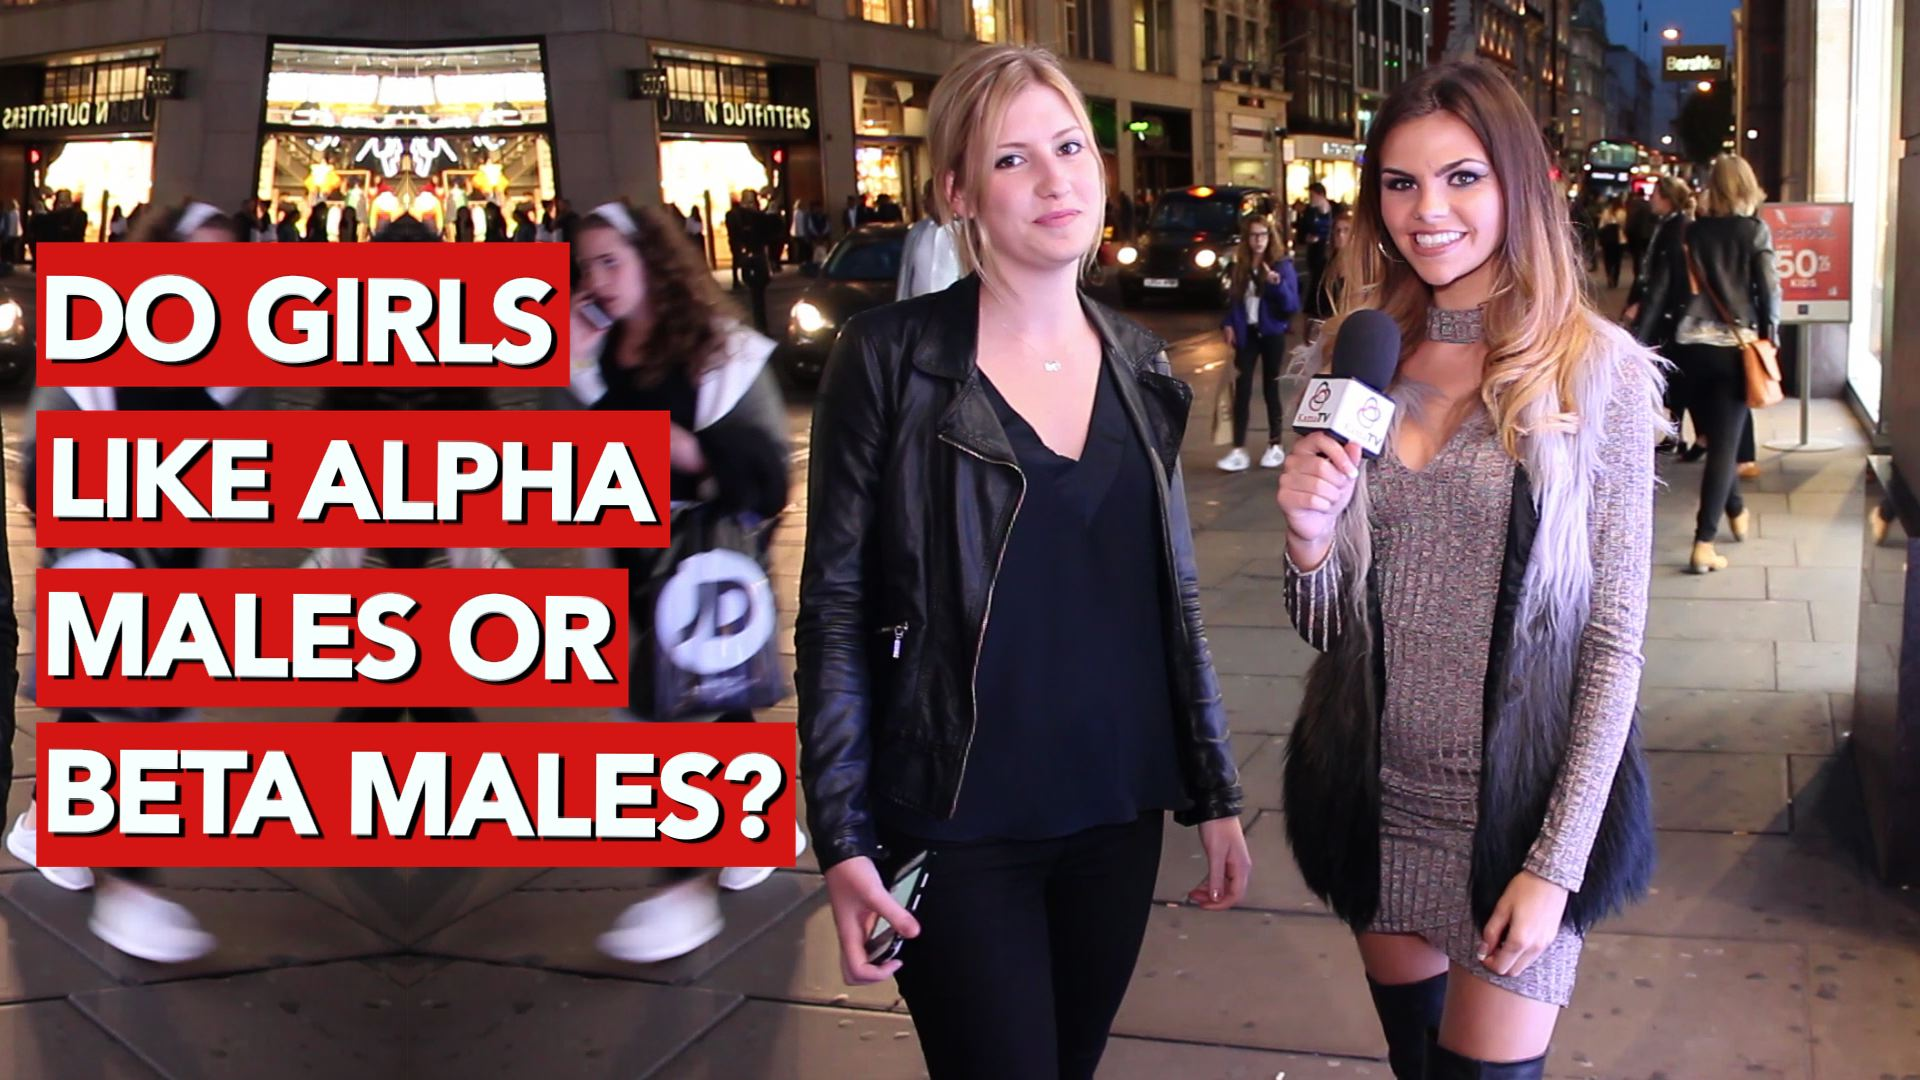 Do girls like alpha males or beta males